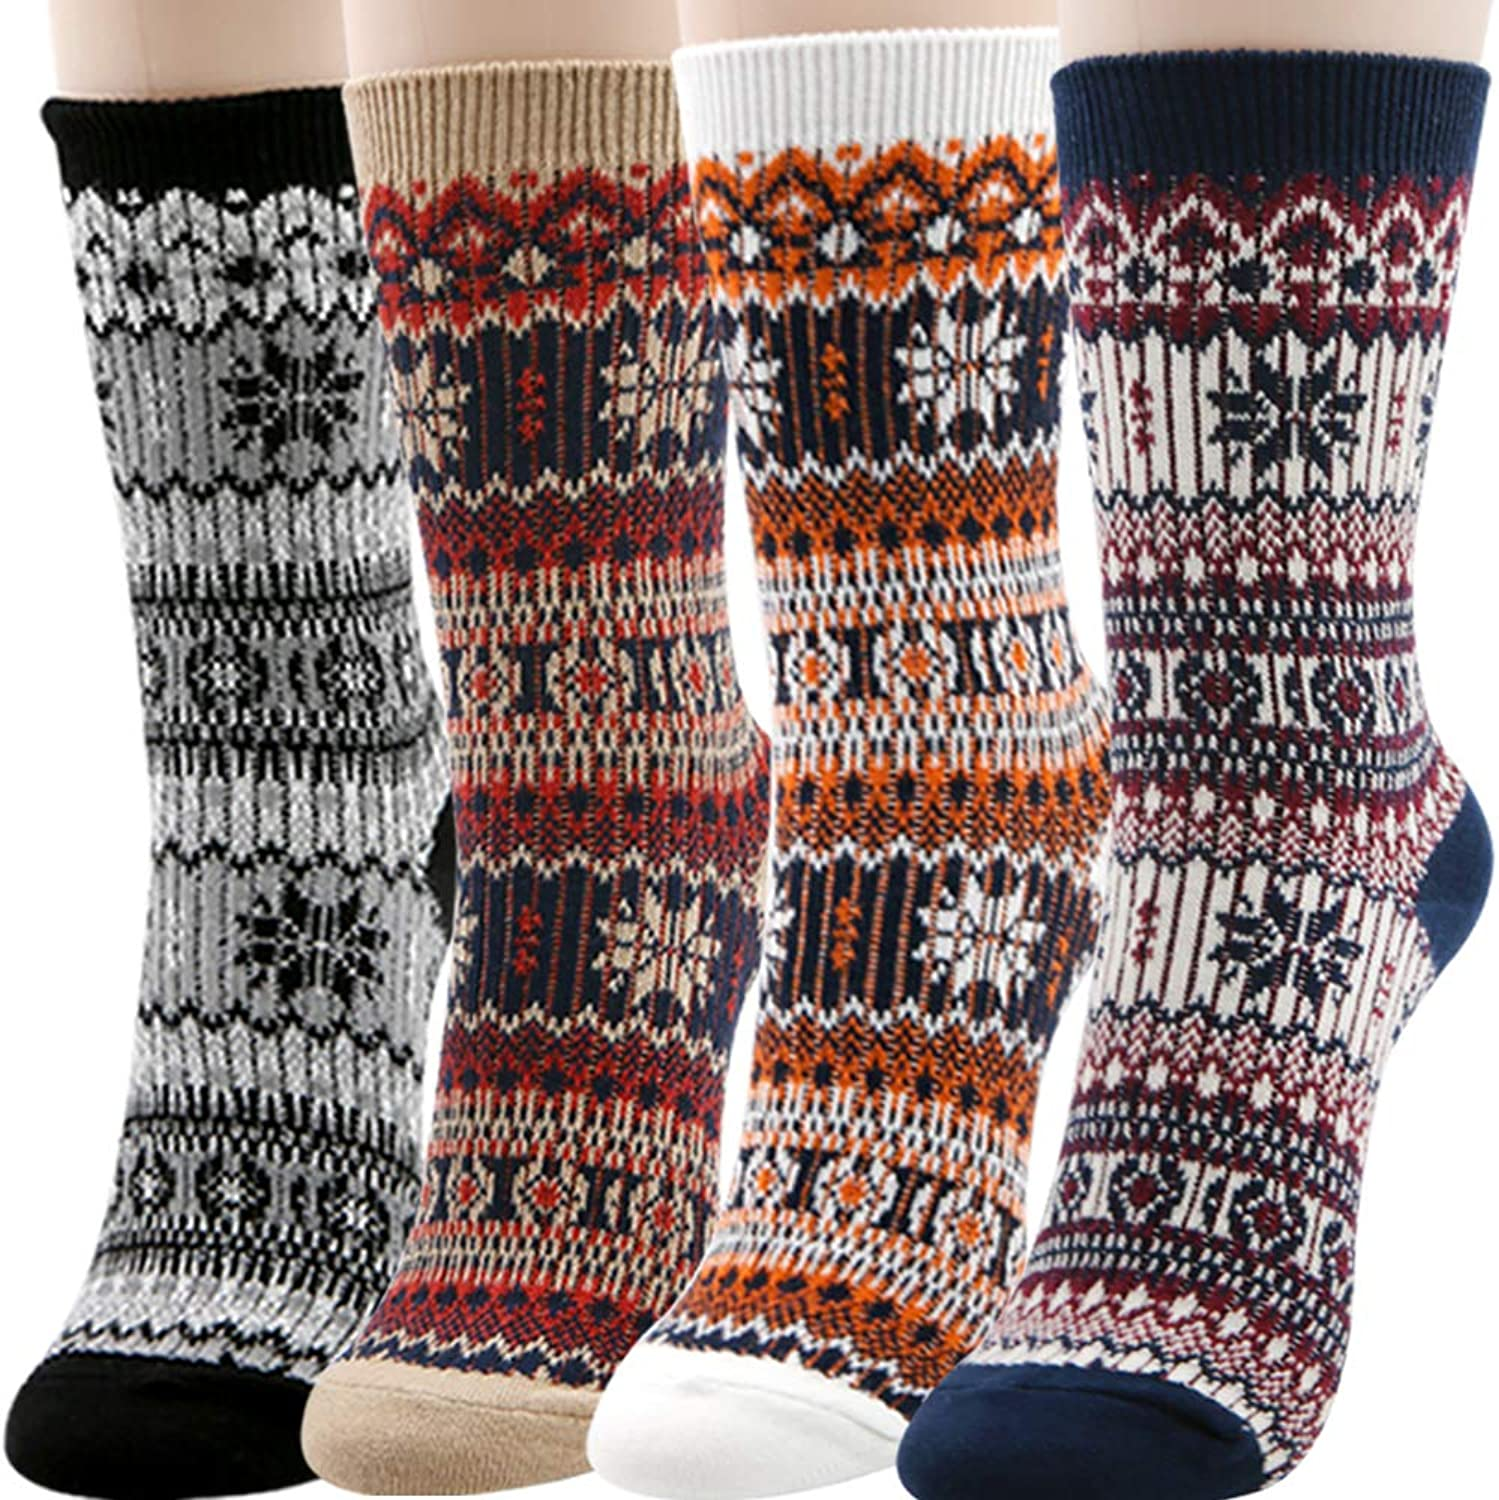 34 Pairs Warm Winter Jacquard Socks for Womens Vintage Style Fall and Winter Warm Thick Knit Cozy Crew Socks